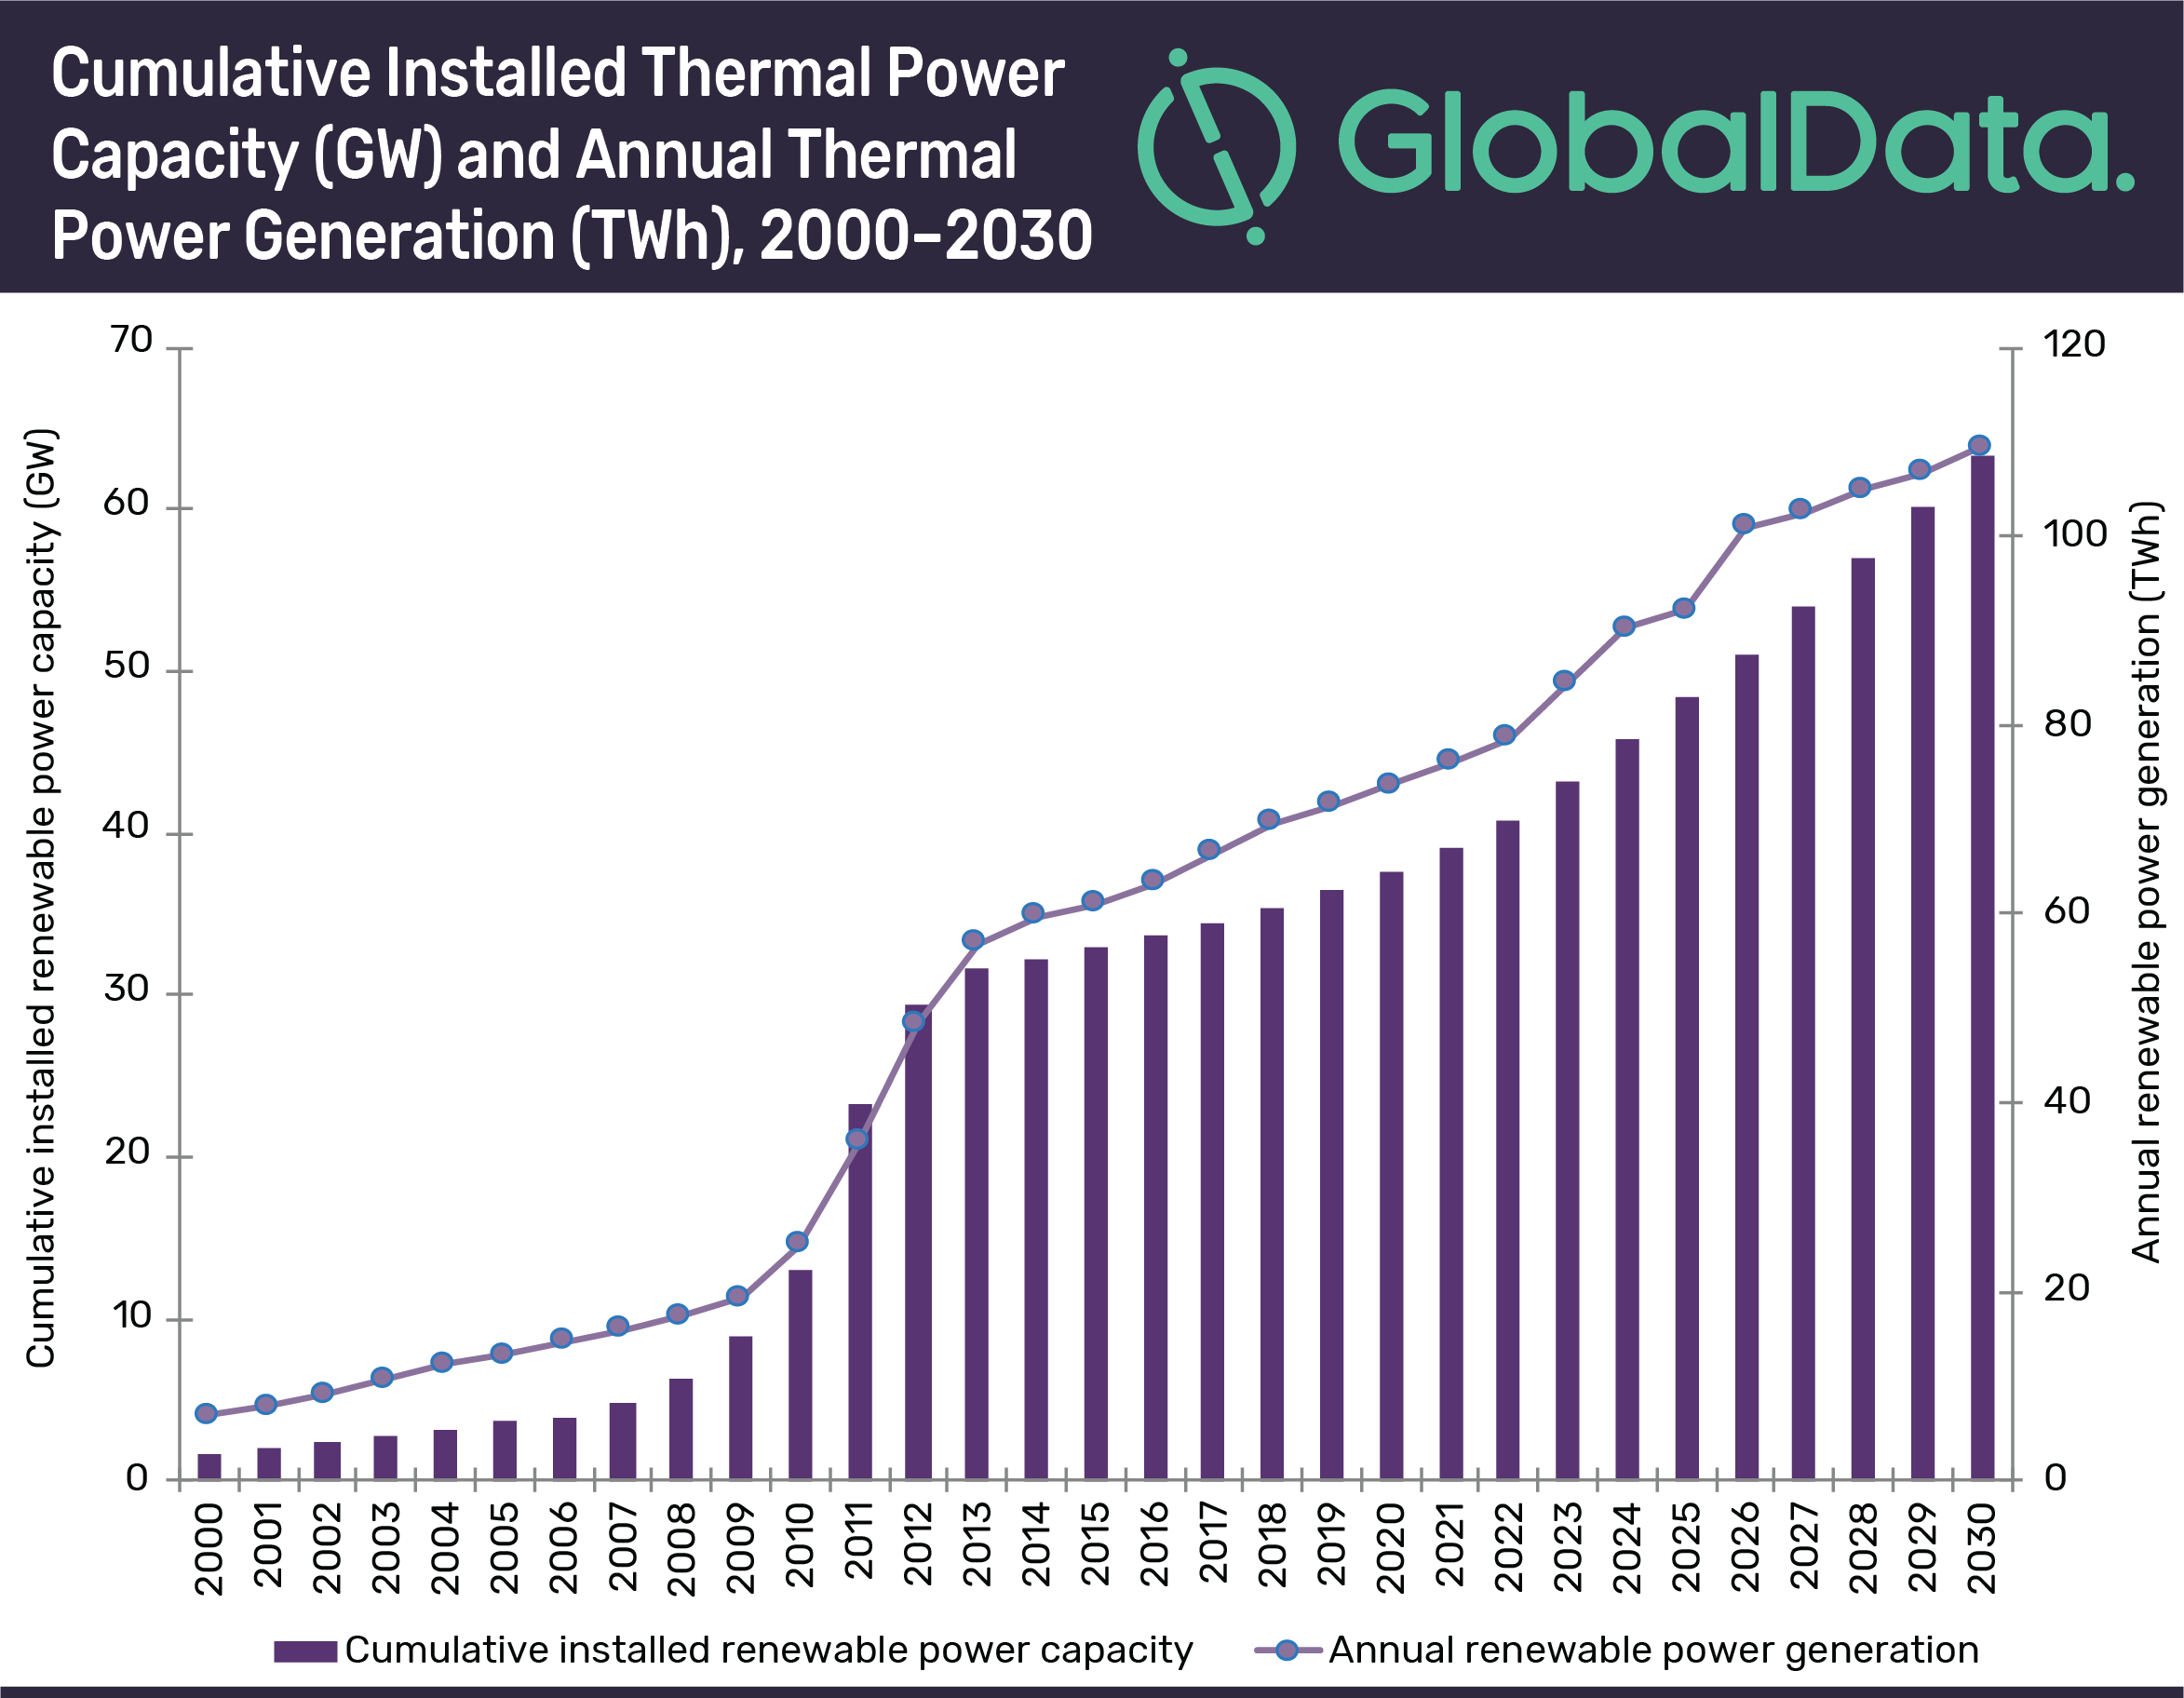 Global power industry tenders: Thermal technology up 22% in August